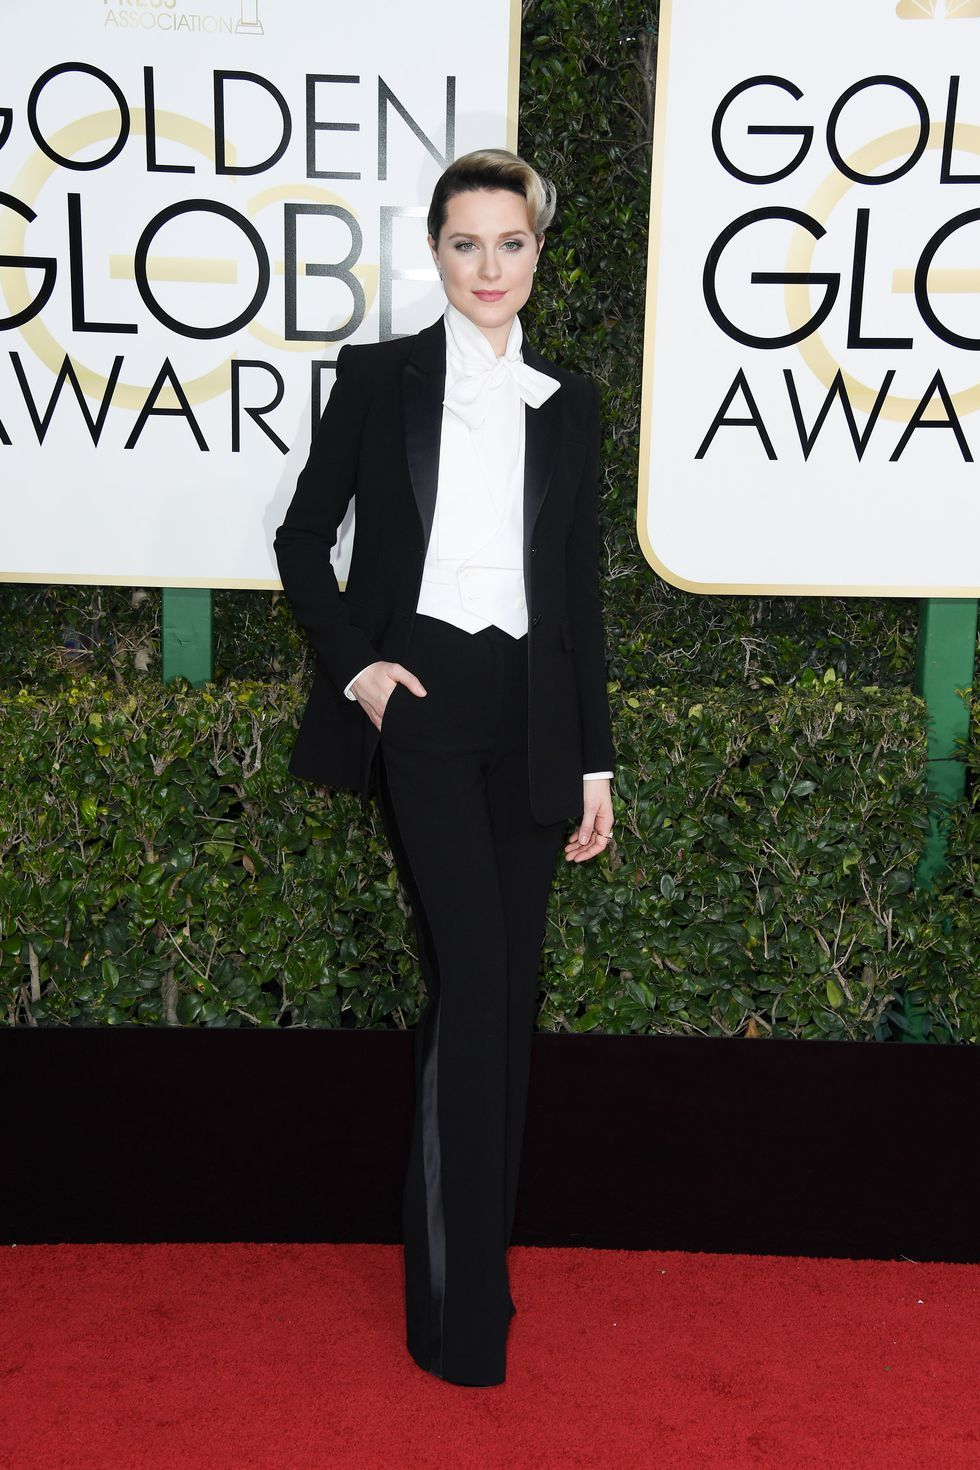 The Best All-Black Outfits From The Golden Globes photo